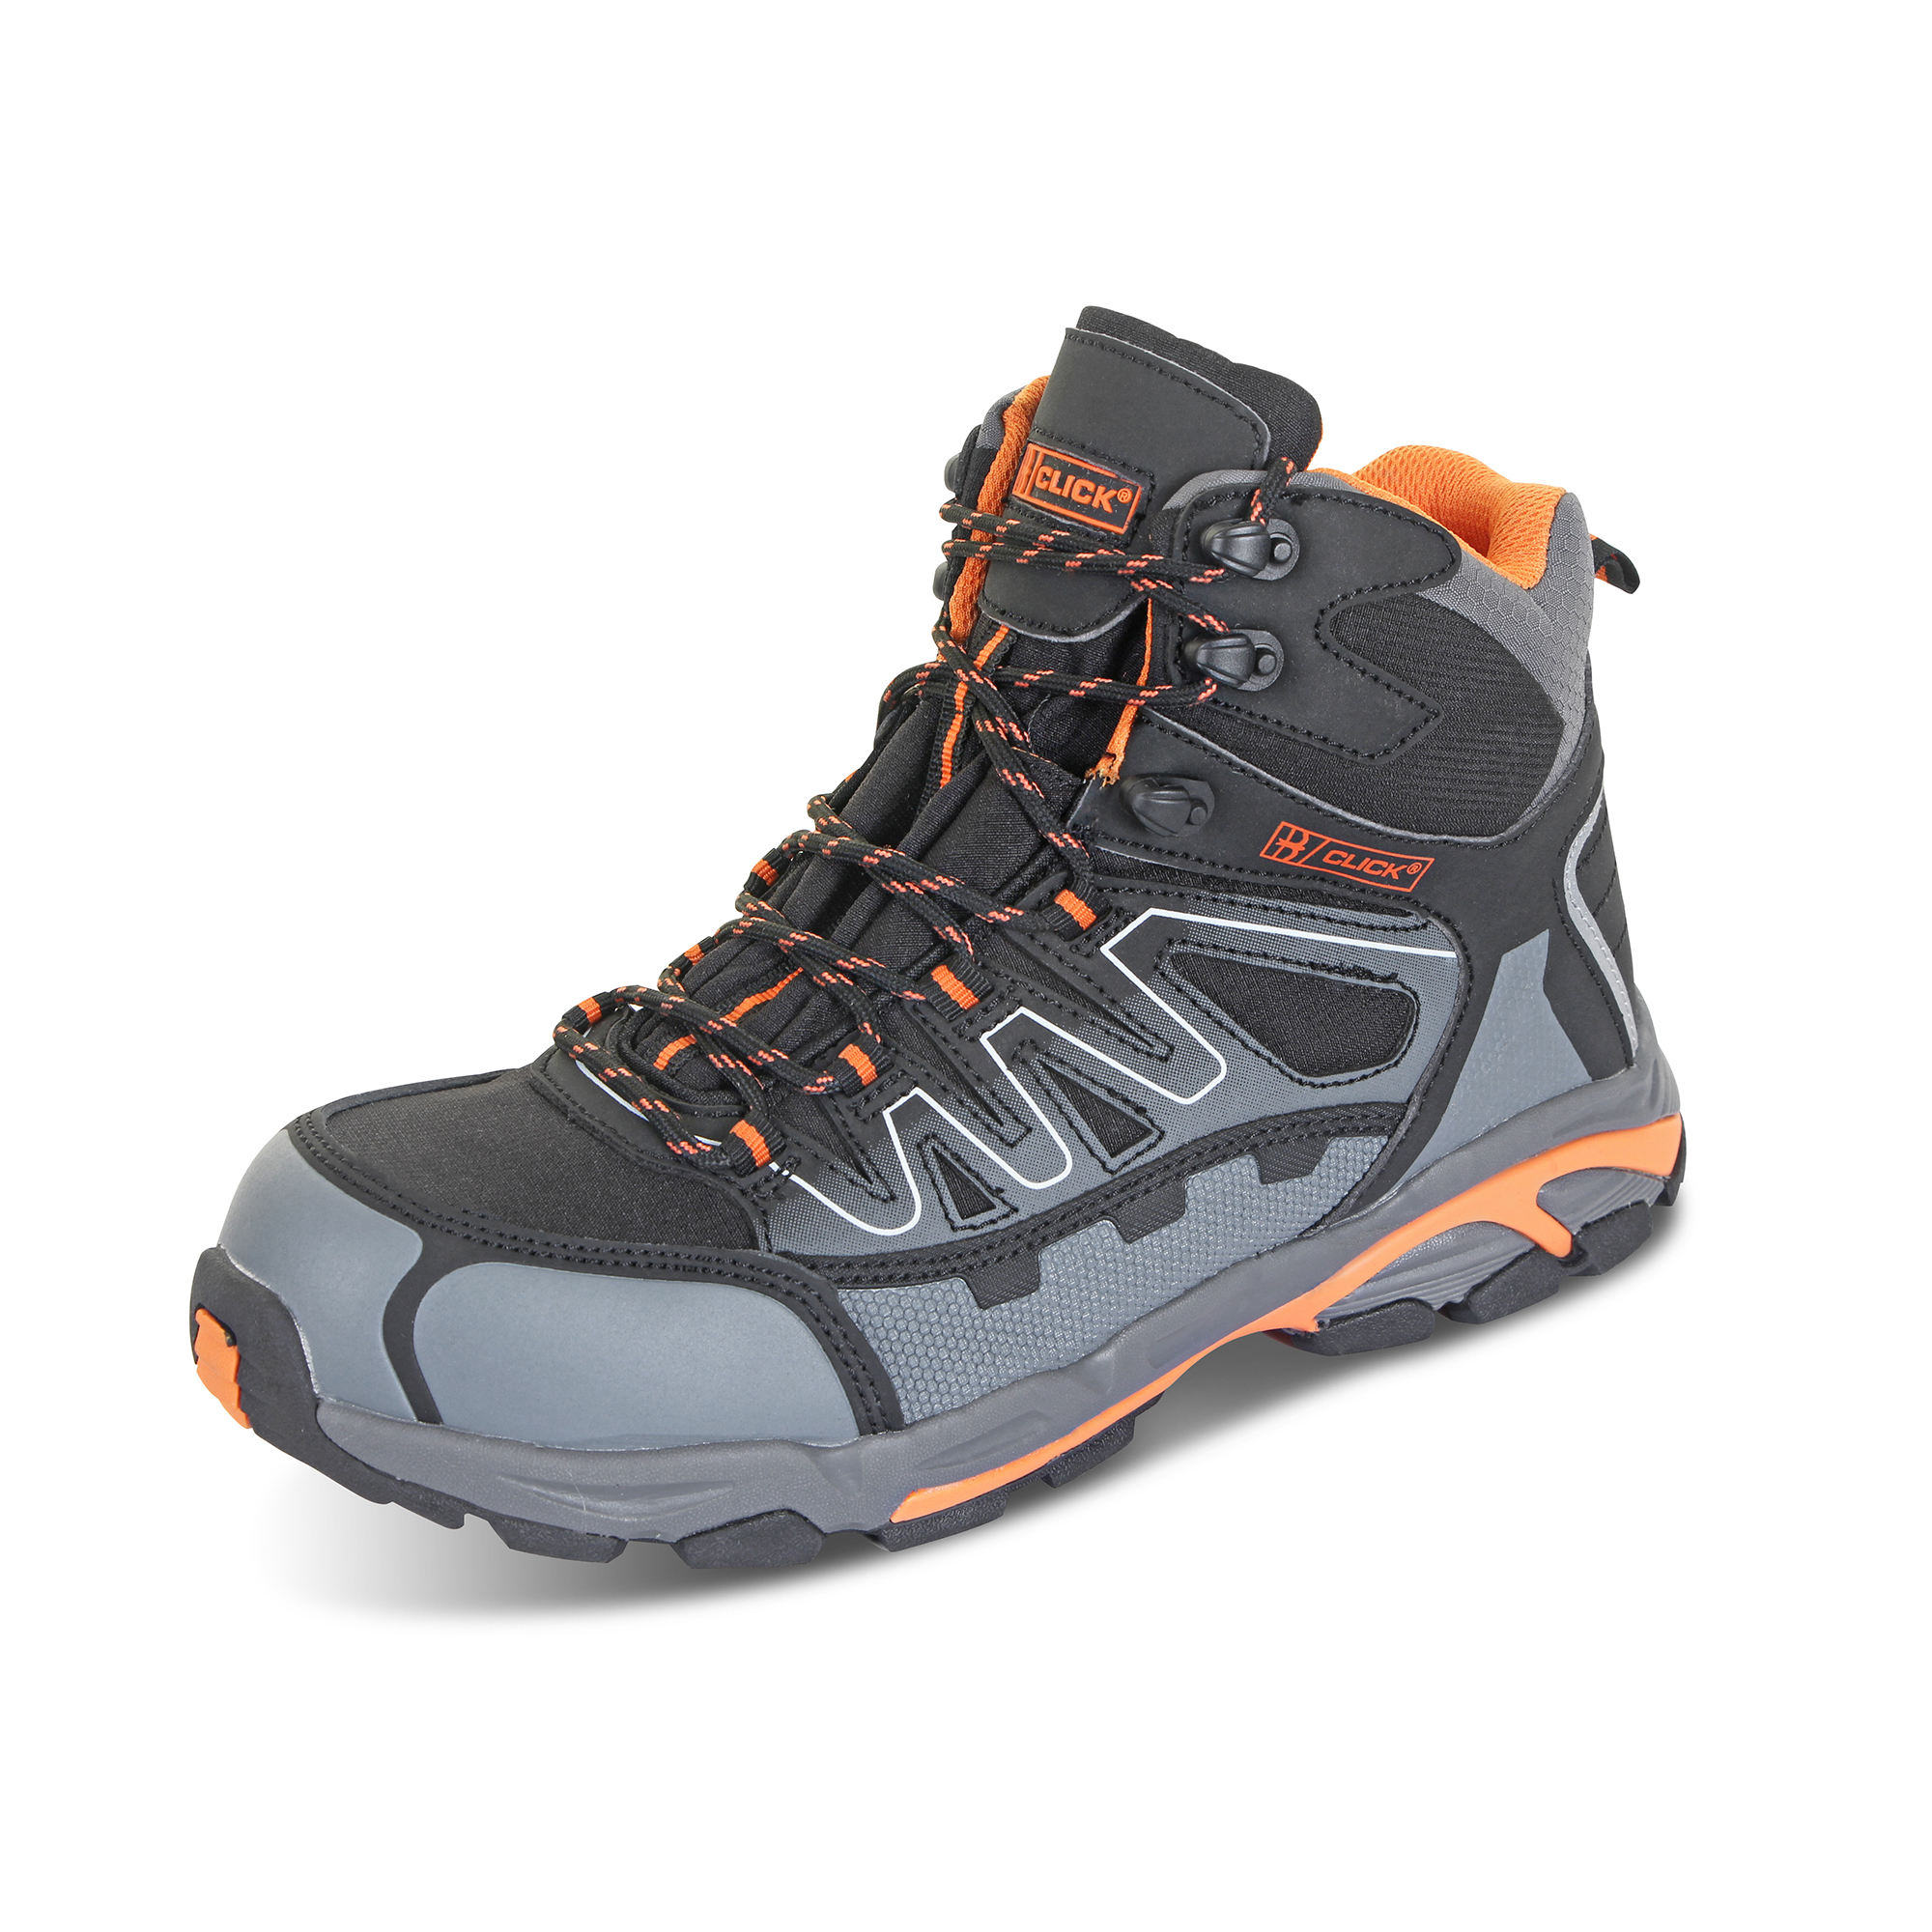 Limitless Click Footwear Leather S3 Hiker Boot Composite Toe Size 9 Black/Grey Ref CF3509 *Up to 3 Day Leadtime*